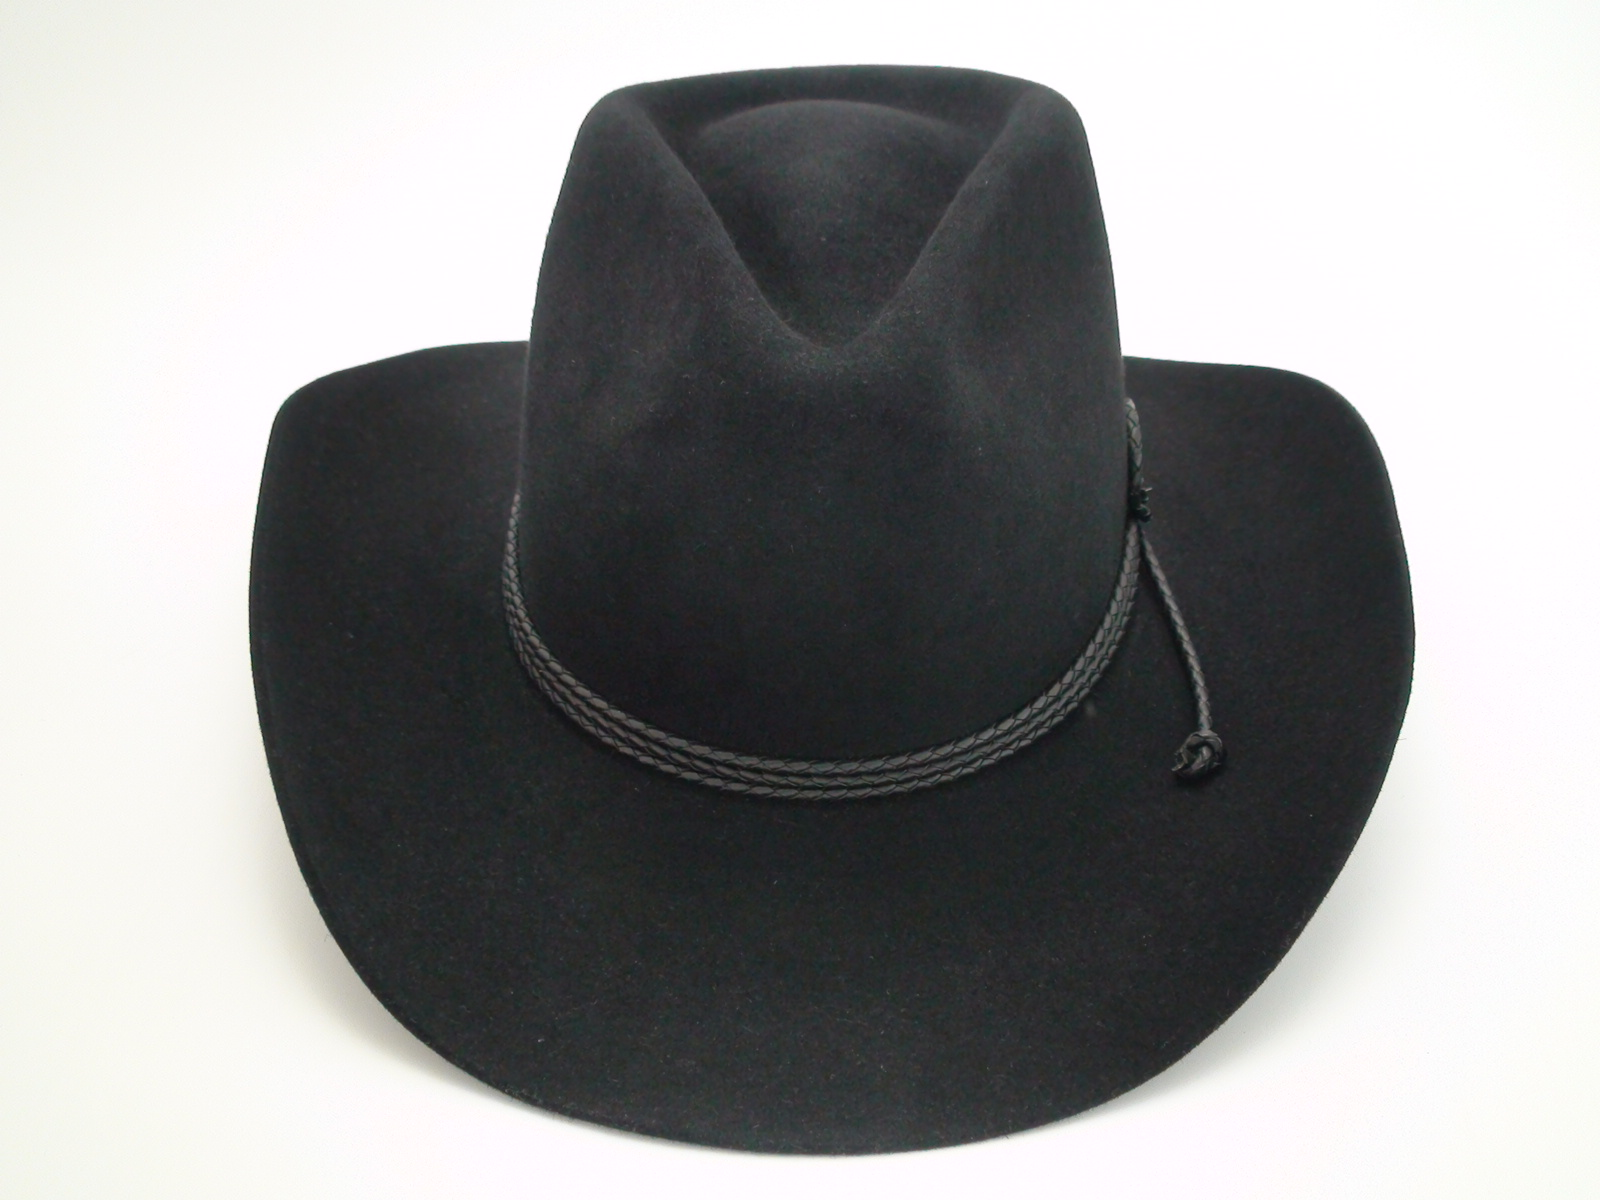 c51d2b2f3f9 Stetson 30x El Patron Felt Hat Mist Gray Handmade In The Usa